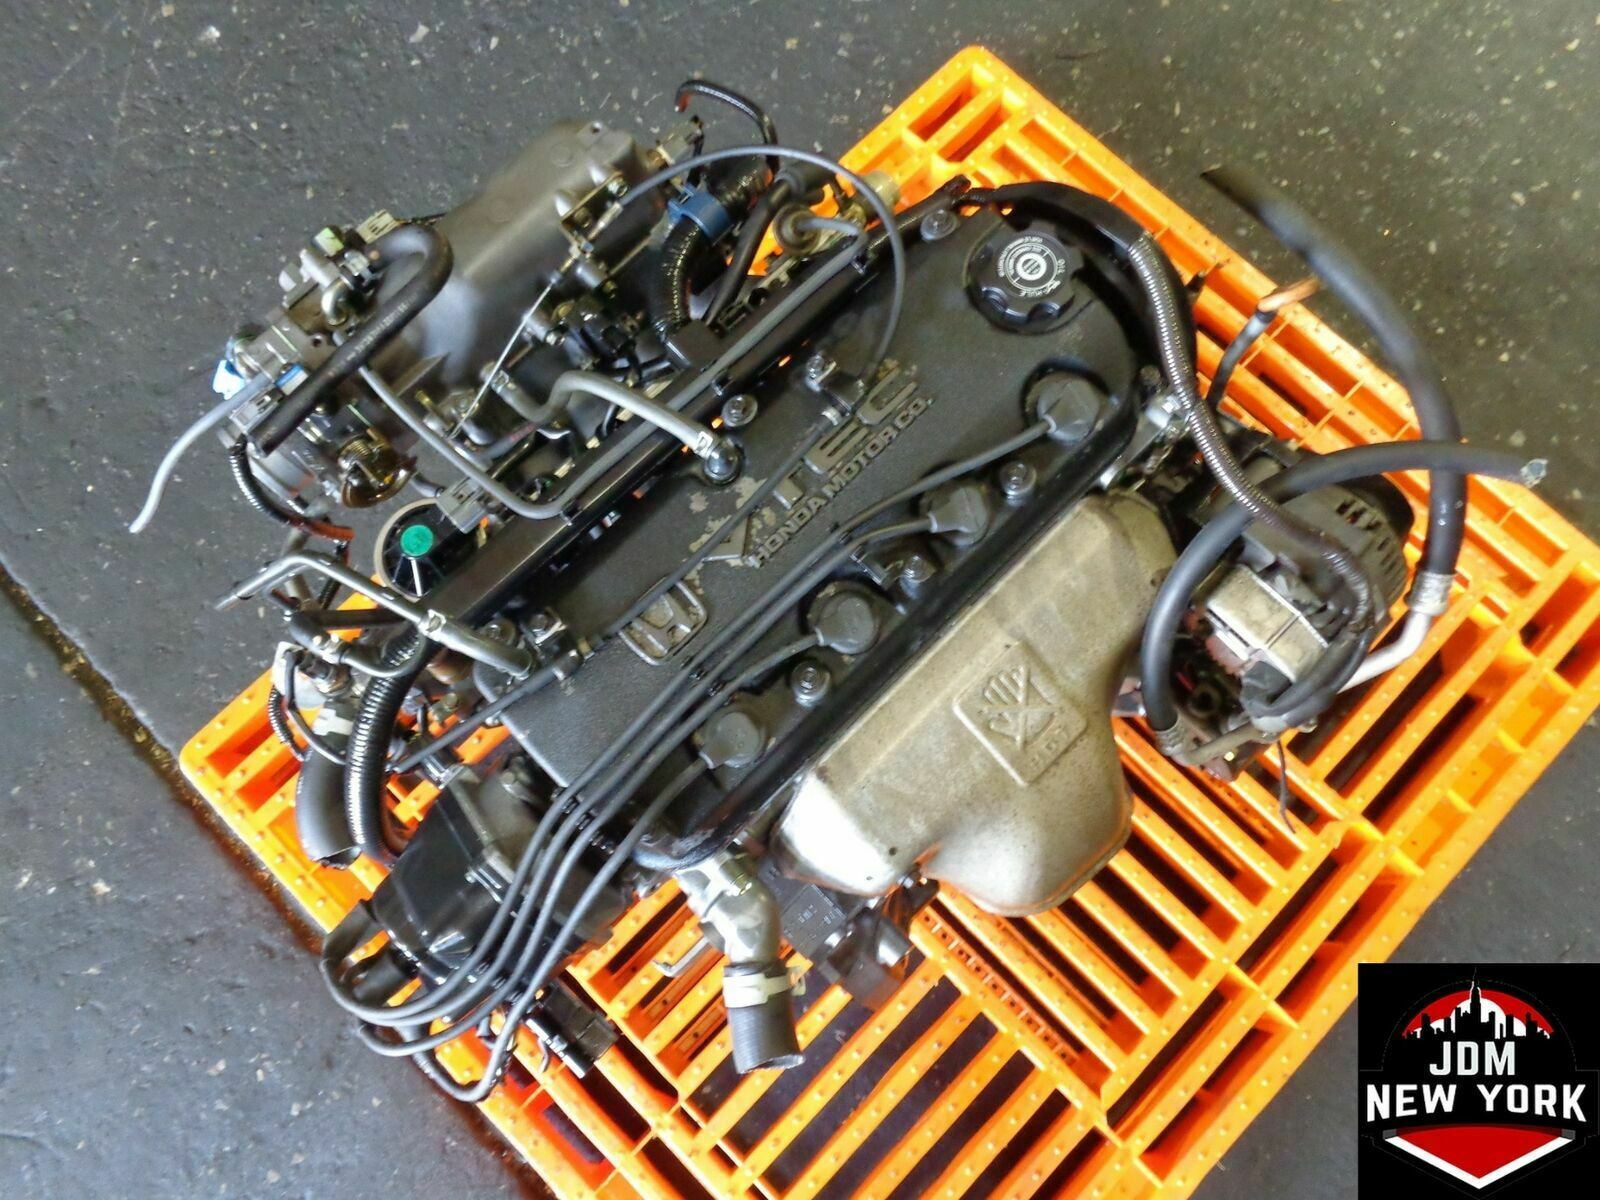 98 99 00 01 02 honda accord 2.3l sohc vtec engine *free shipping* jdm f23a  for sale online  ebay